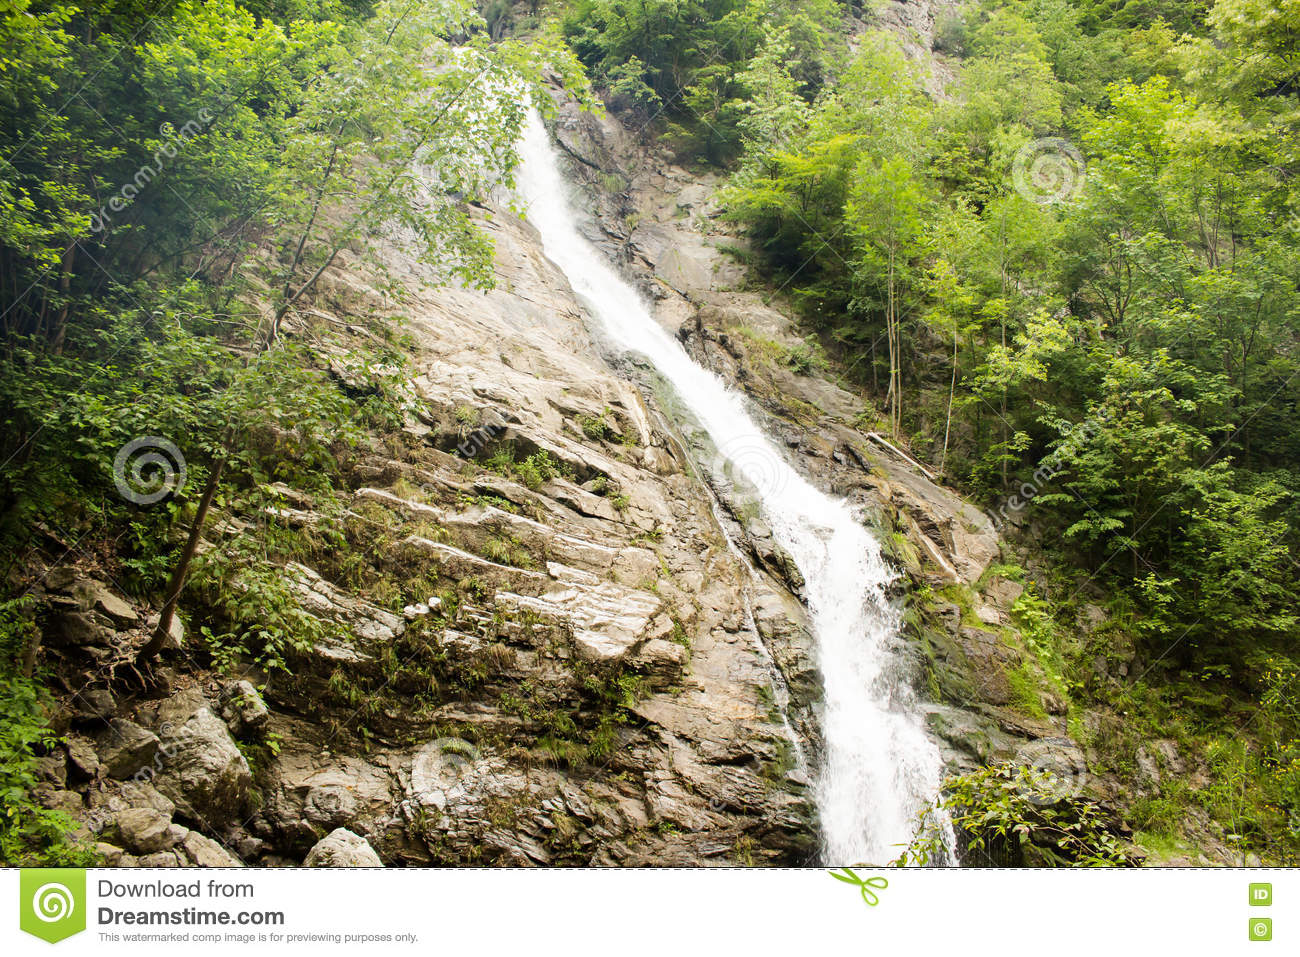 Lotrisor Waterfall In Cozia National Park, Romania Stock Photo.